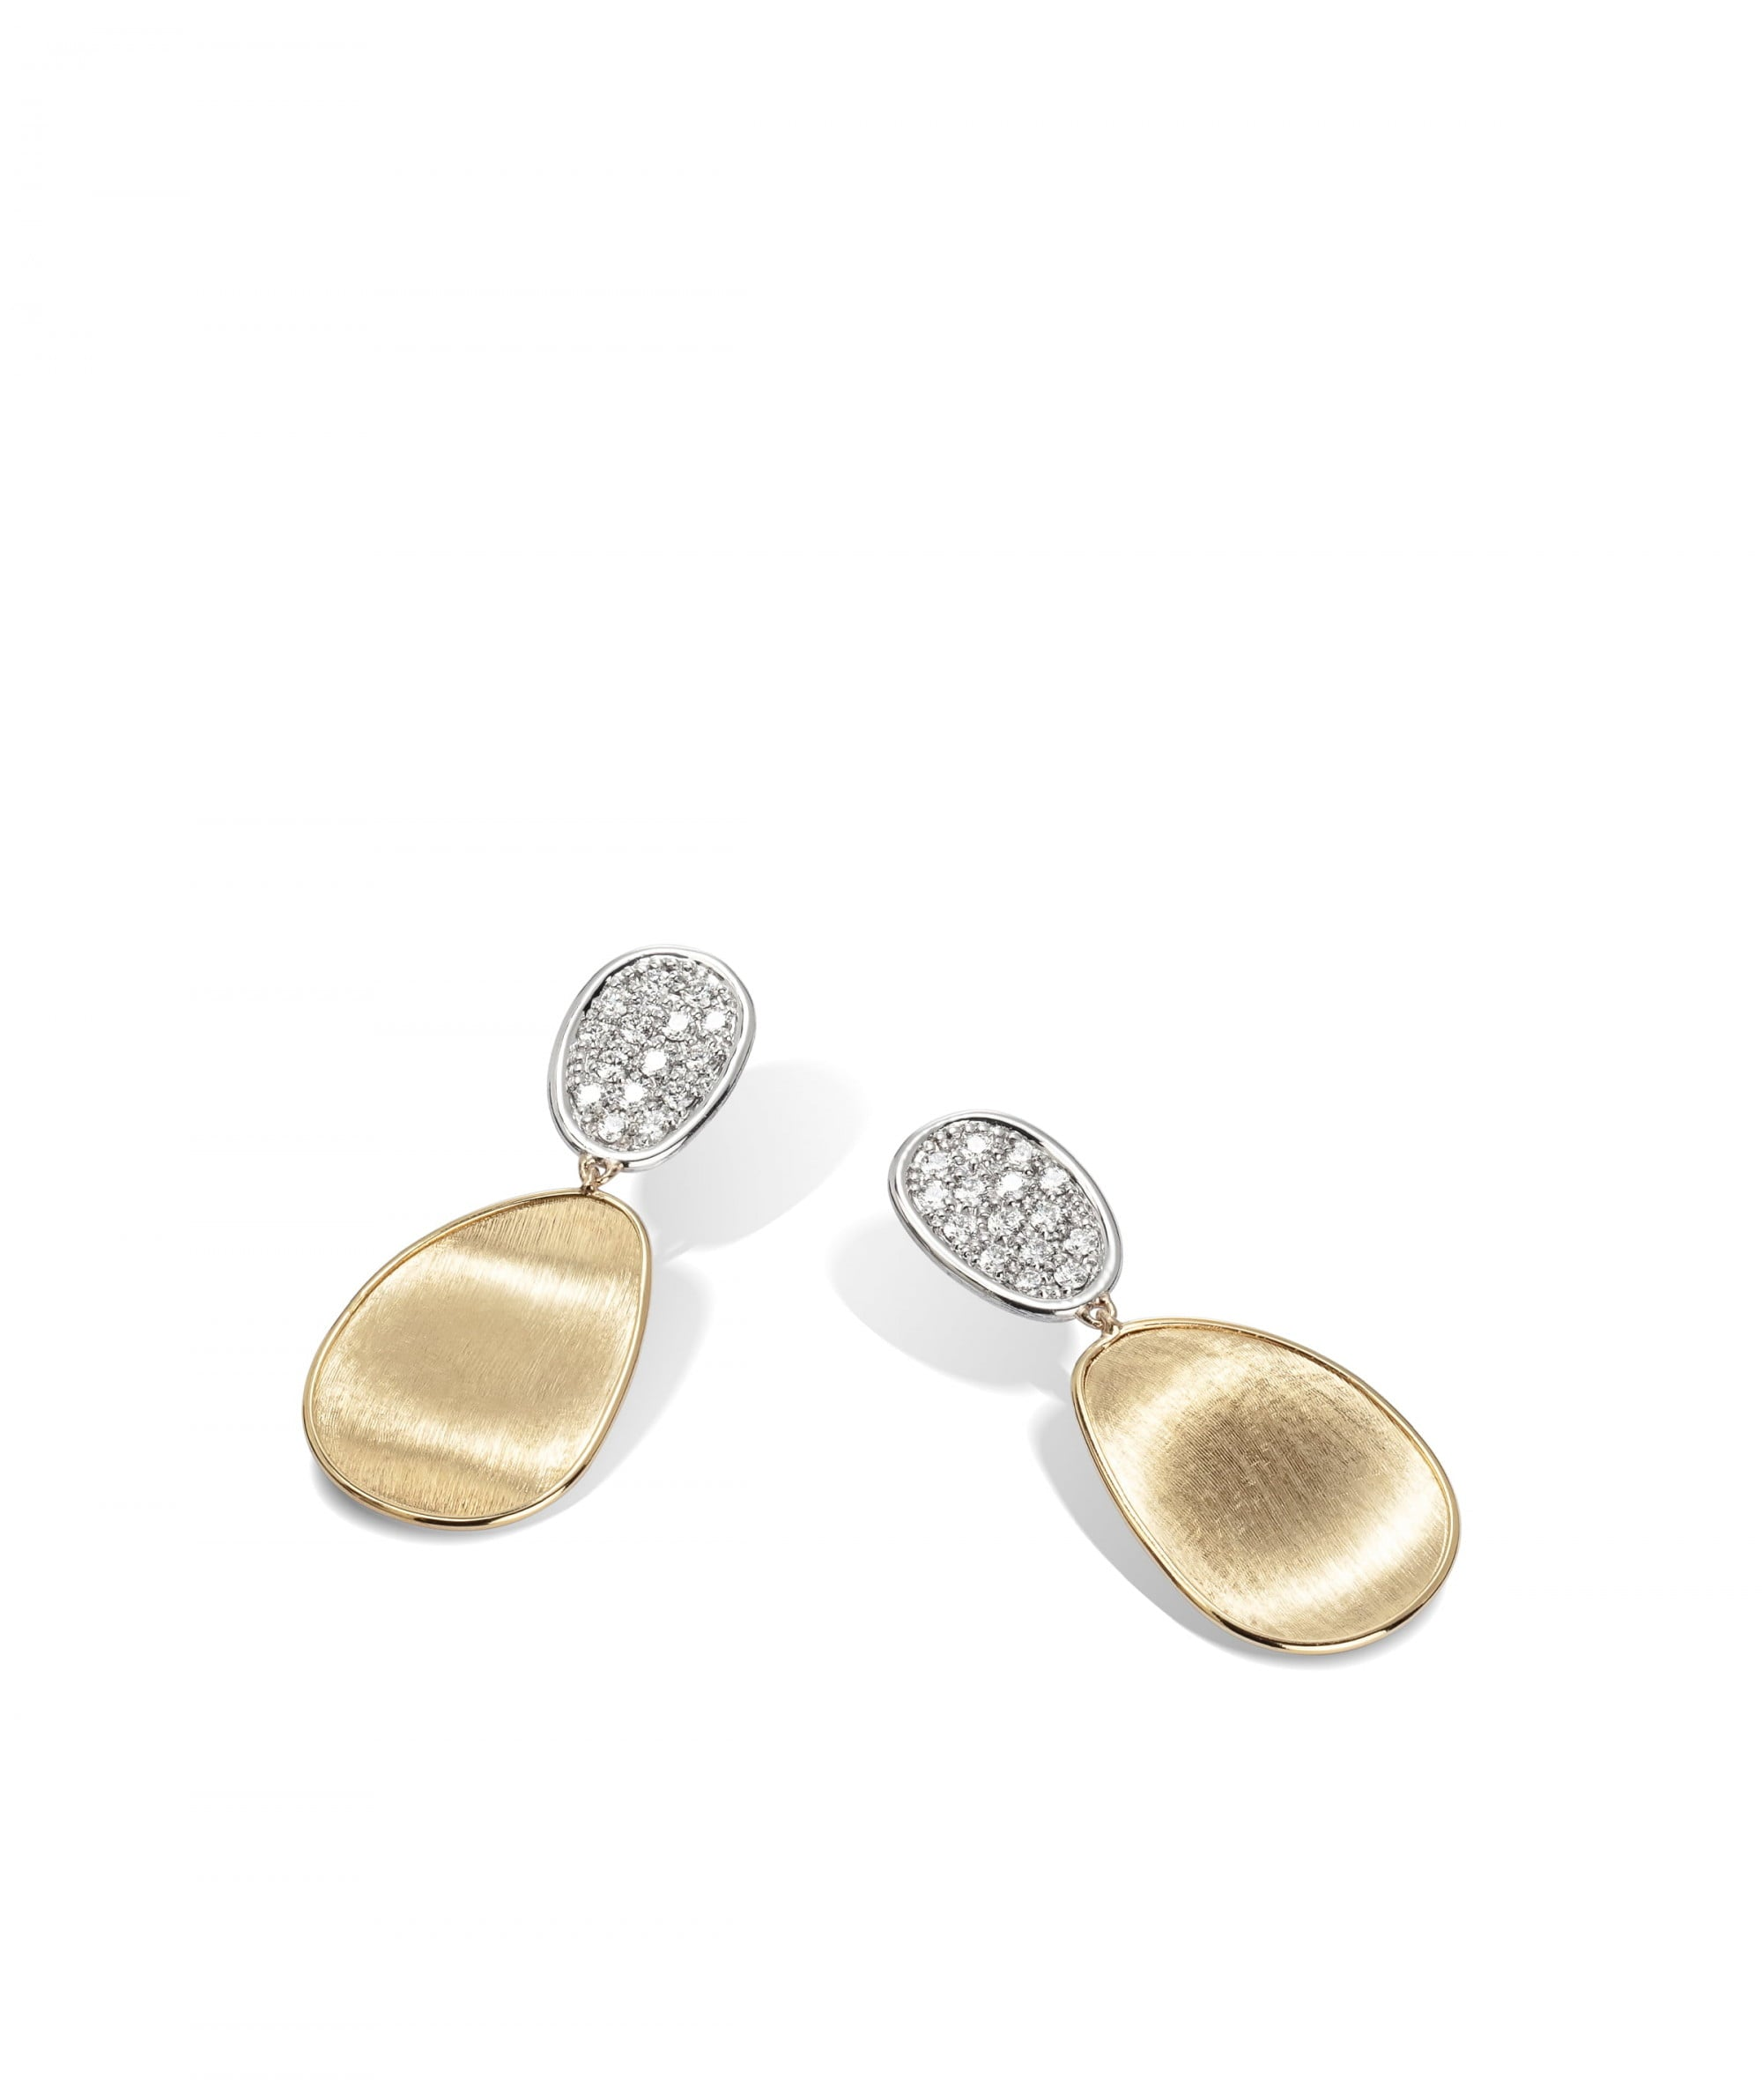 Lunaria Earrings in 18k Yellow Gold with Pave Diamonds Double Drop Small - Orsini Jewellers NZ